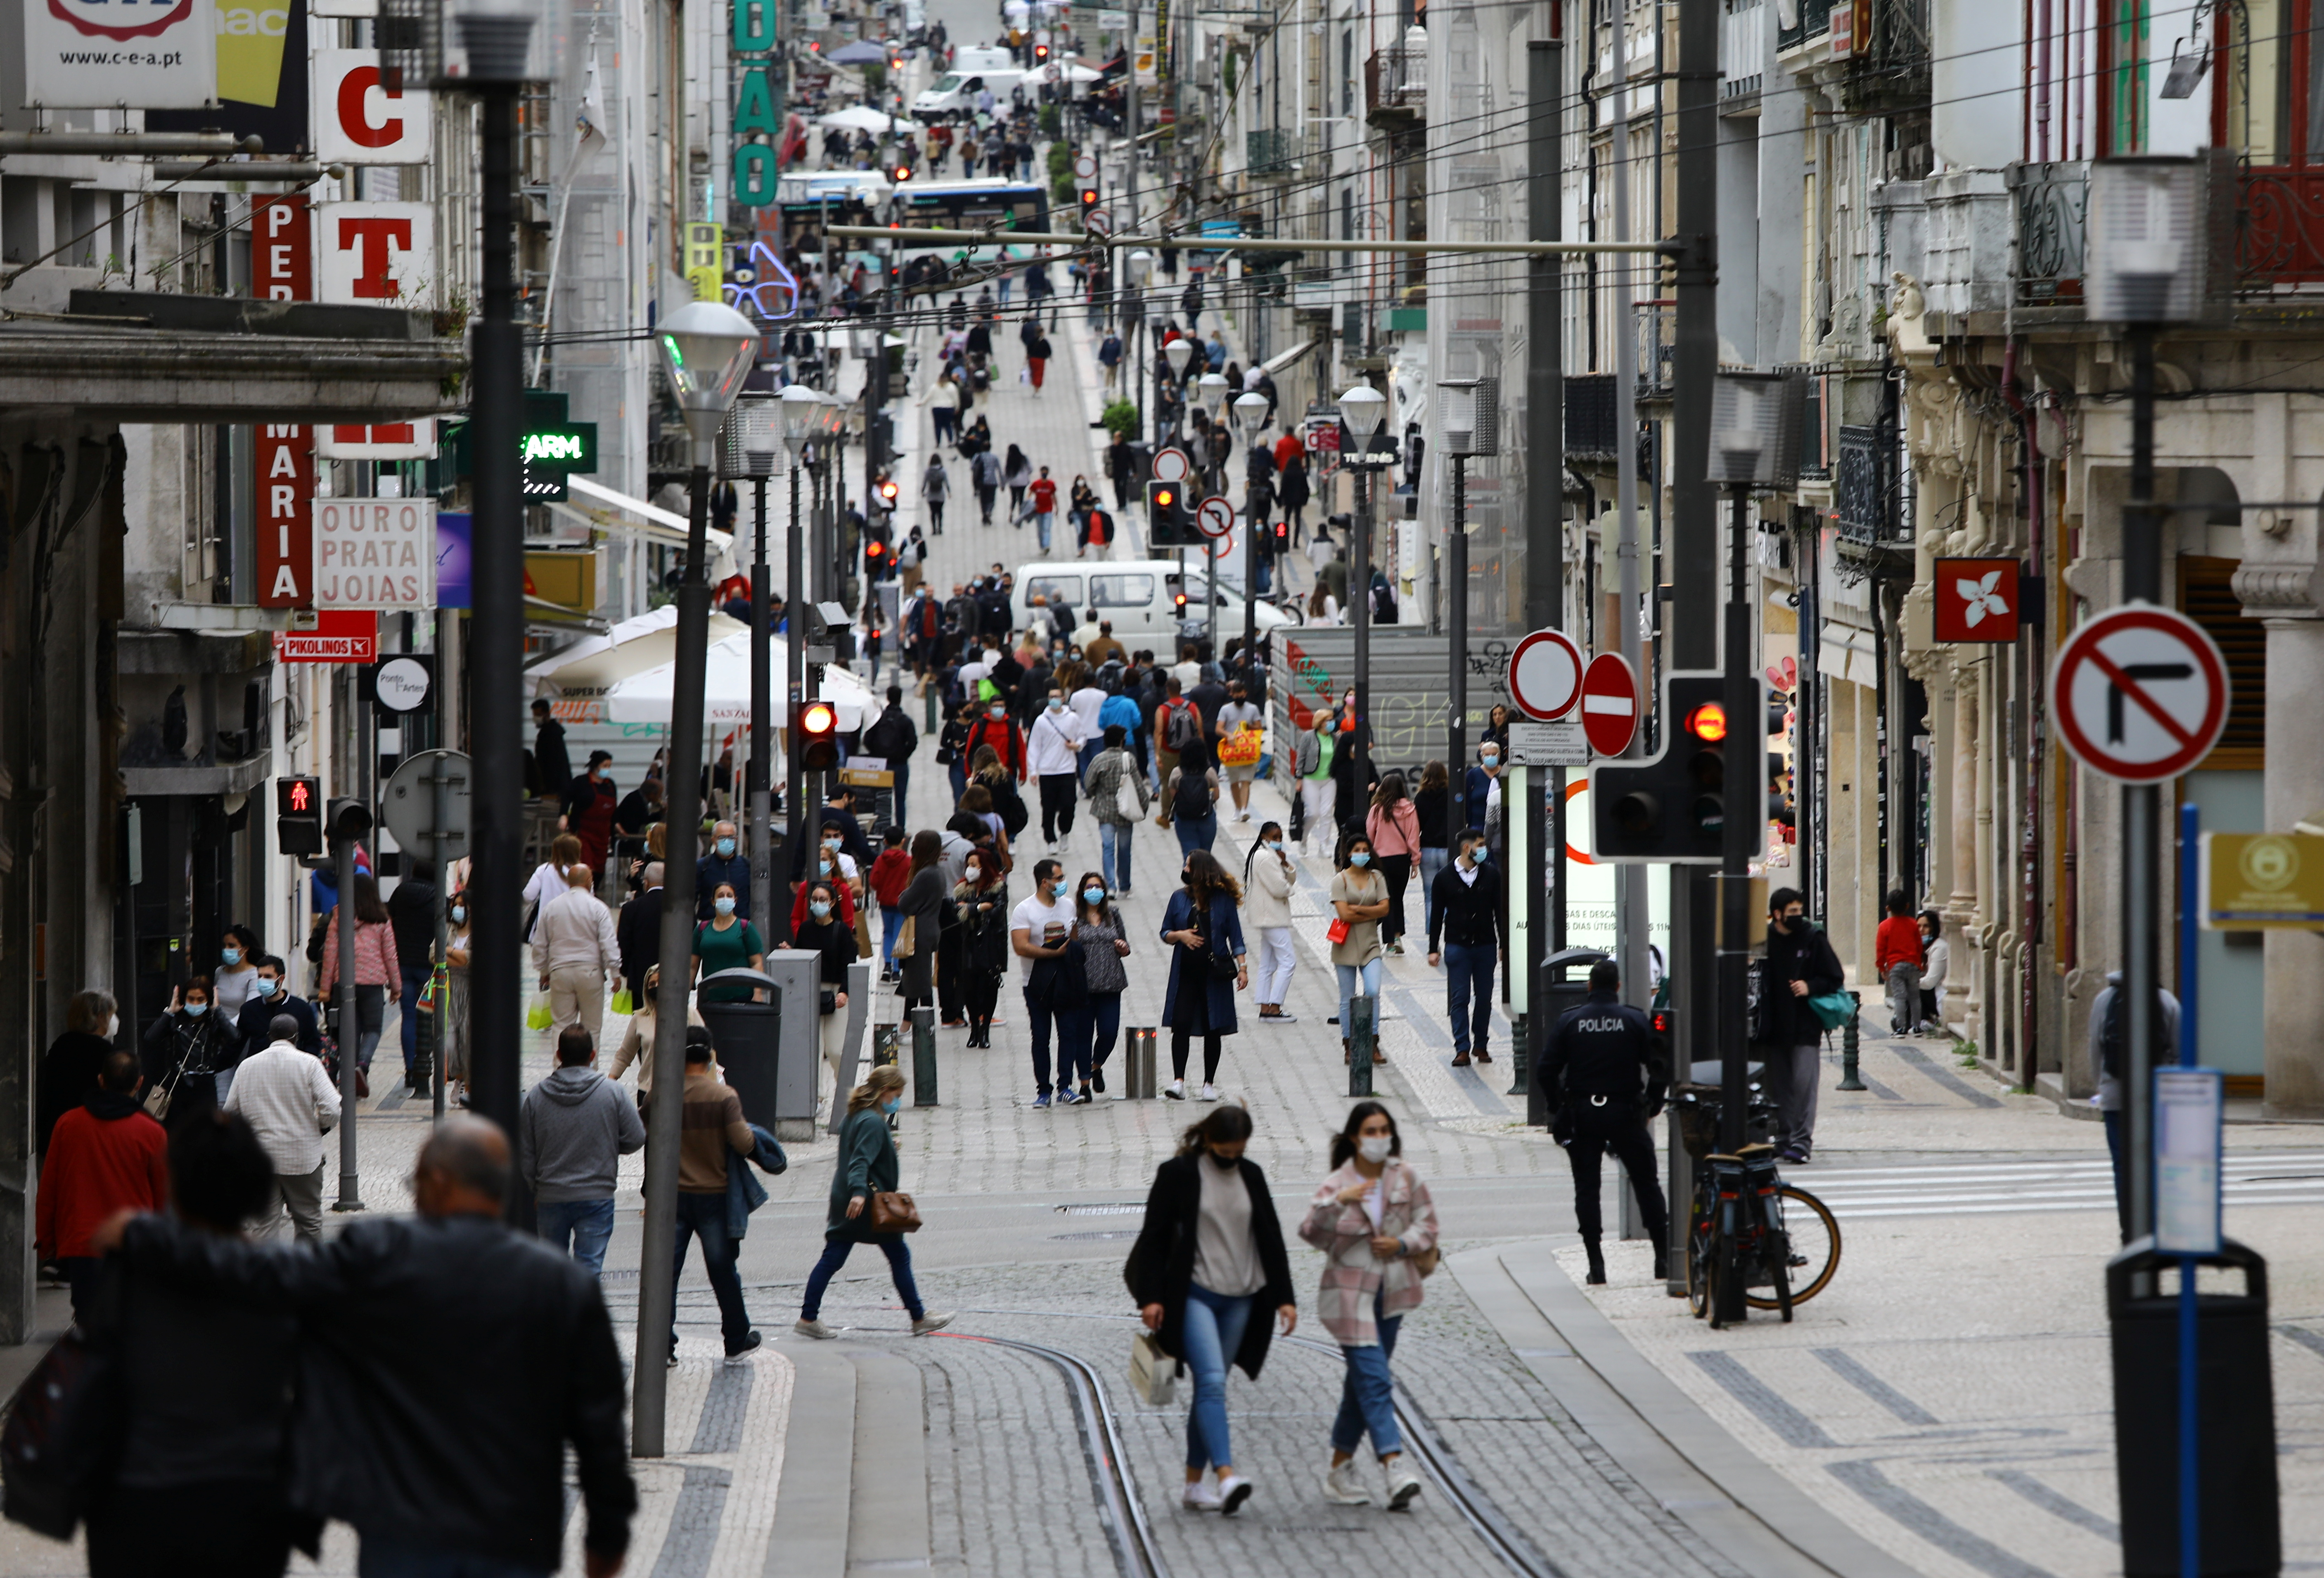 People walk in a street on the day when shops are allowed to reopen, amid the coronavirus disease (COVID-19) pandemic, in Porto, Portugal, April 19, 2021. REUTERS/Violeta Santos Moura